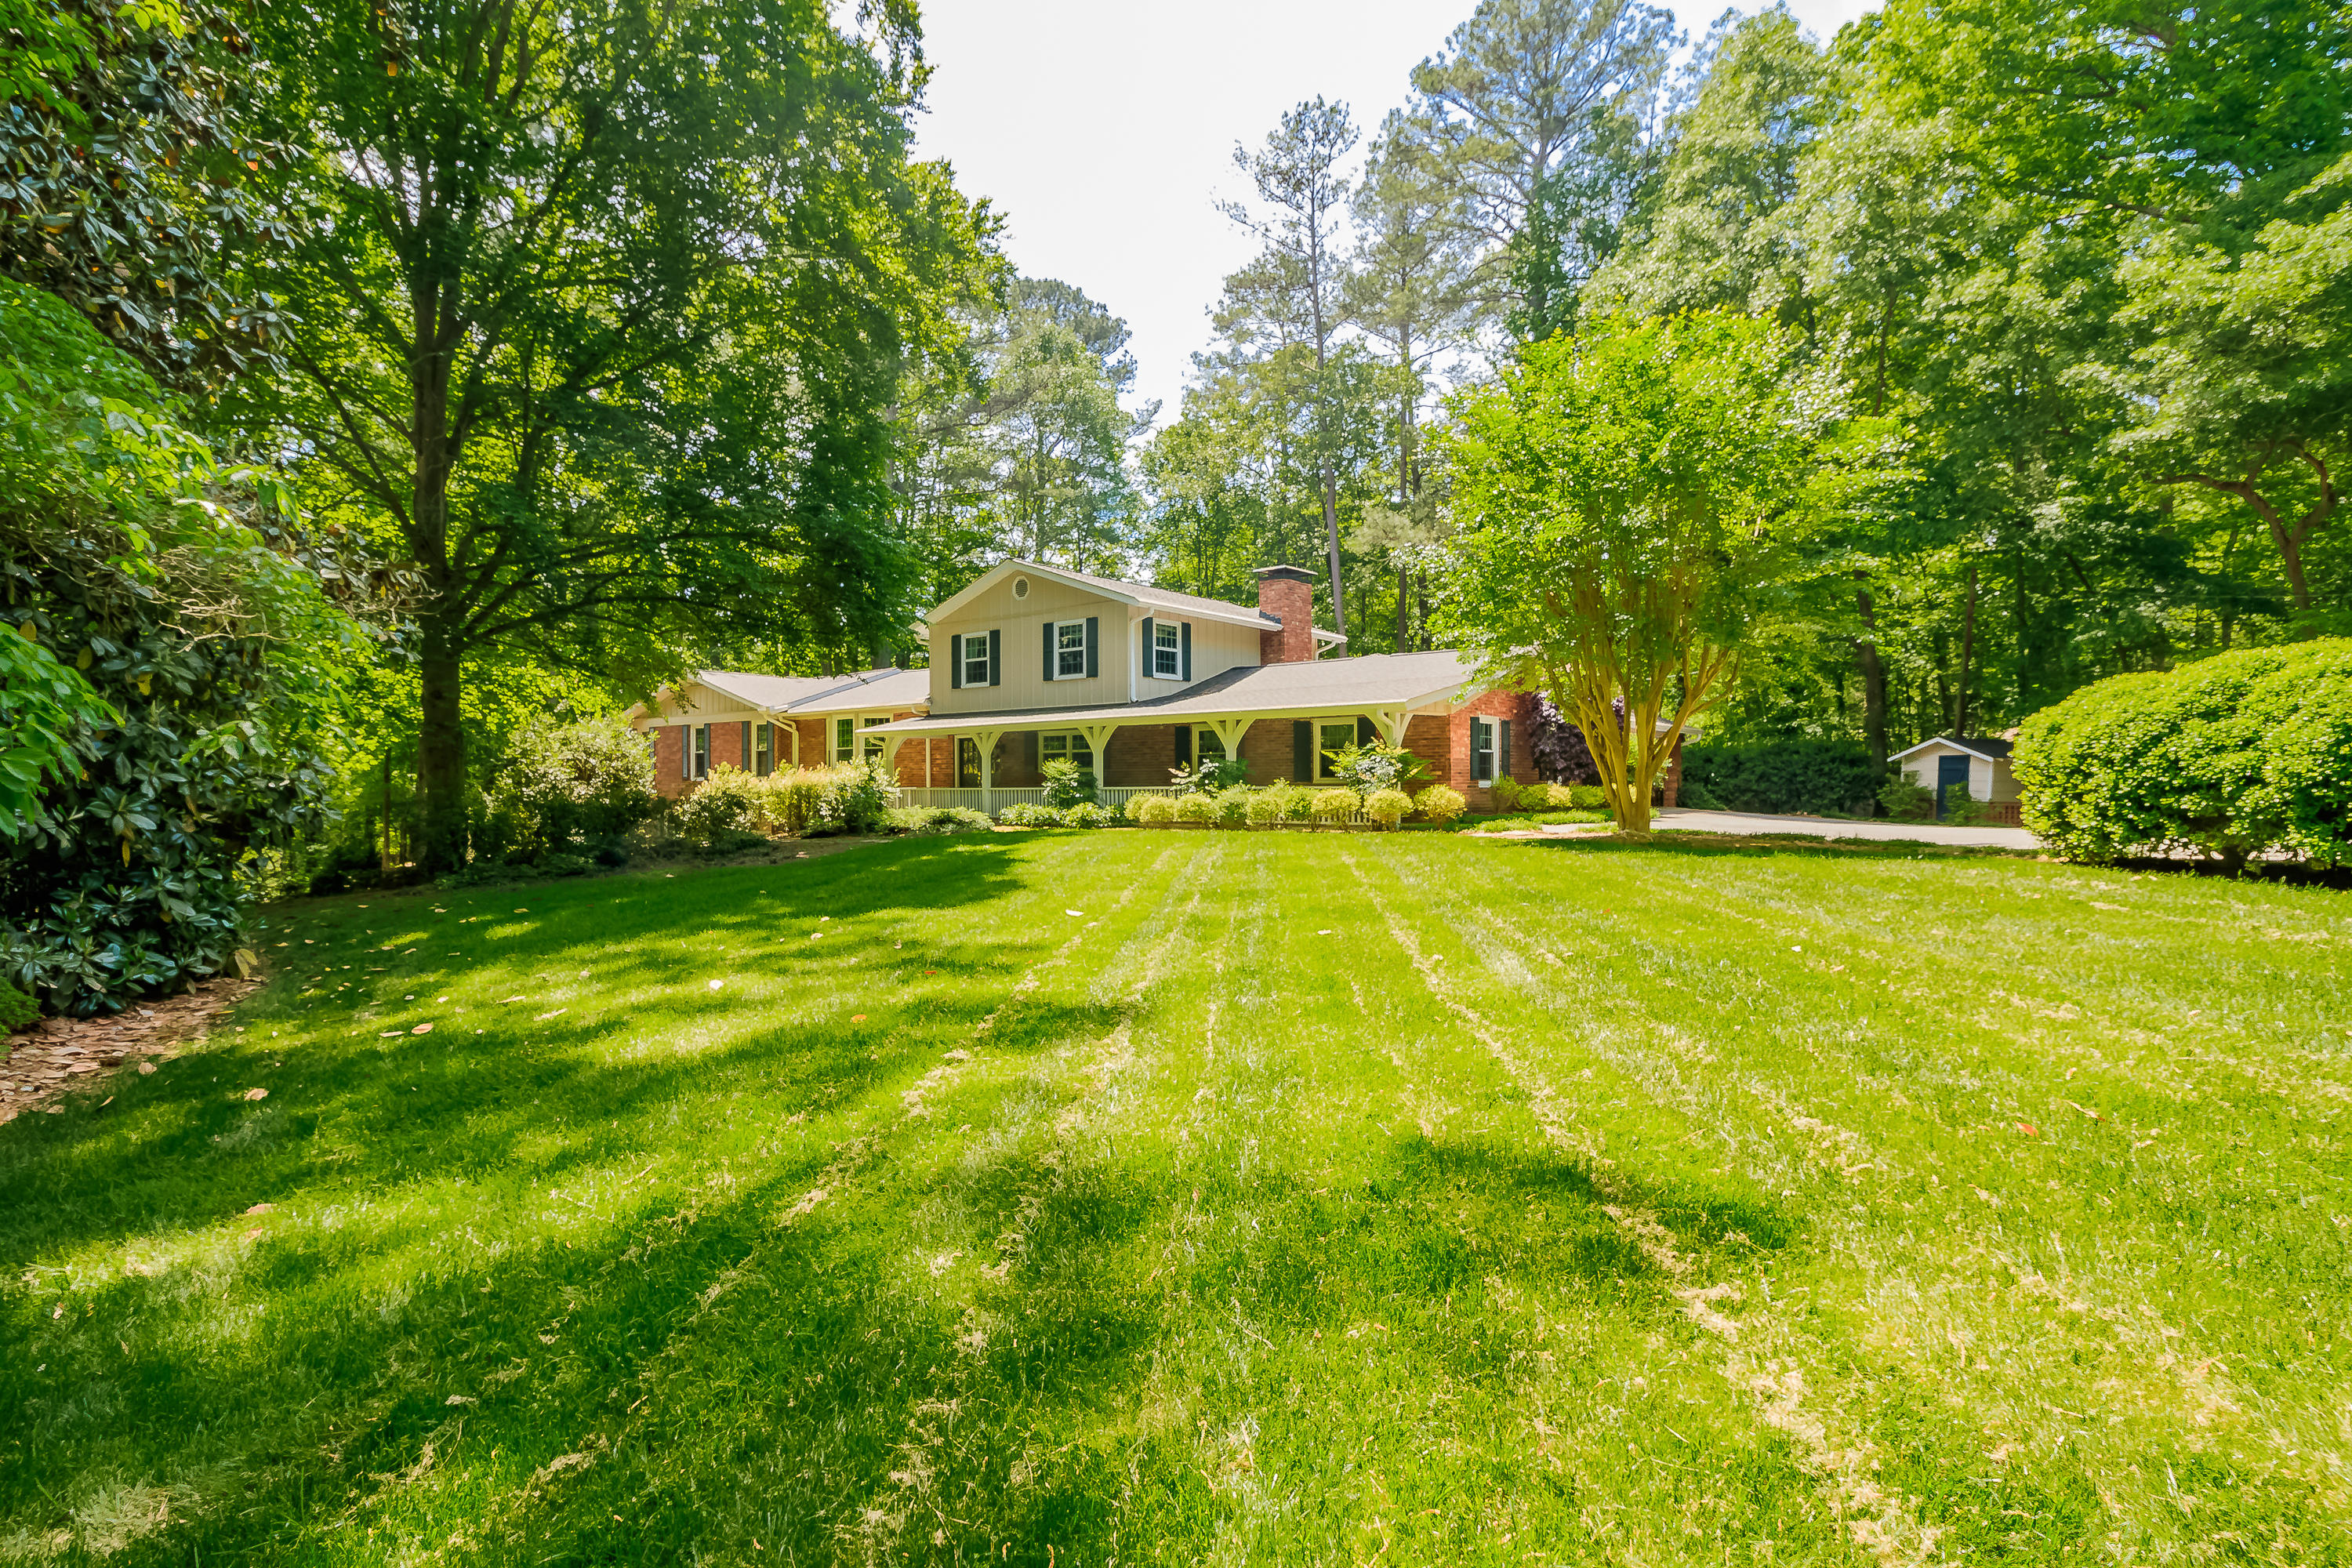 Lafayette Ga Real Estate For Sale Property Search Results Crye